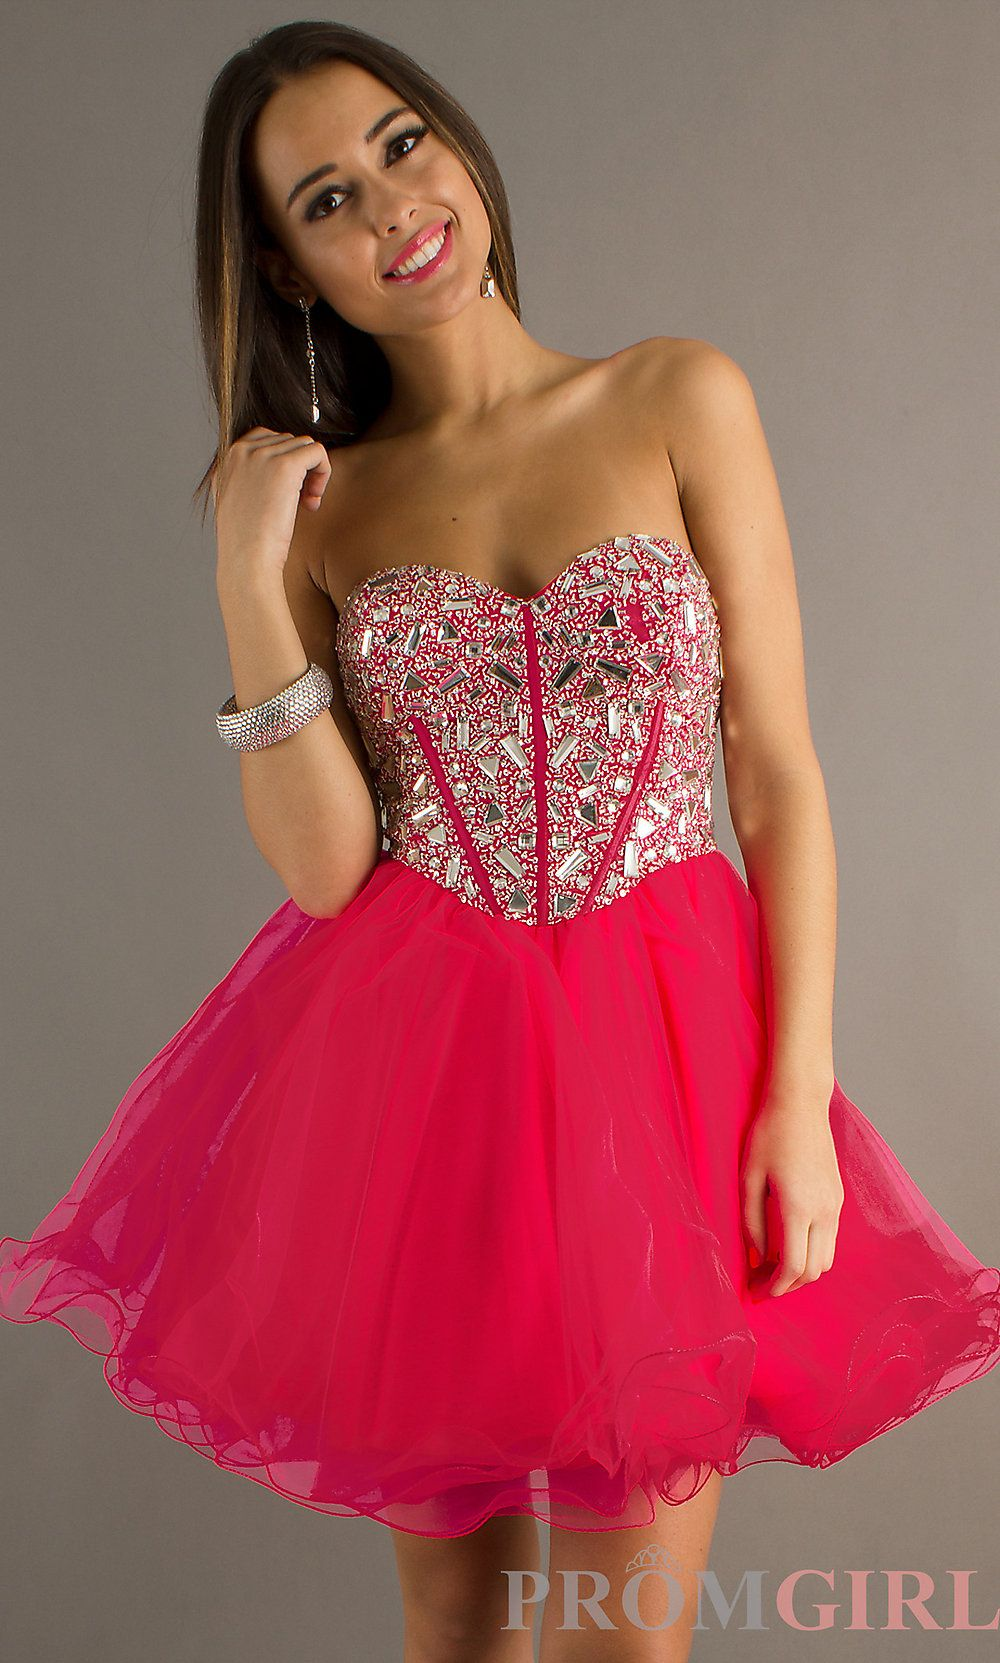 Strapless short prom dress fushia neon | Outfits & dresses- my style ...